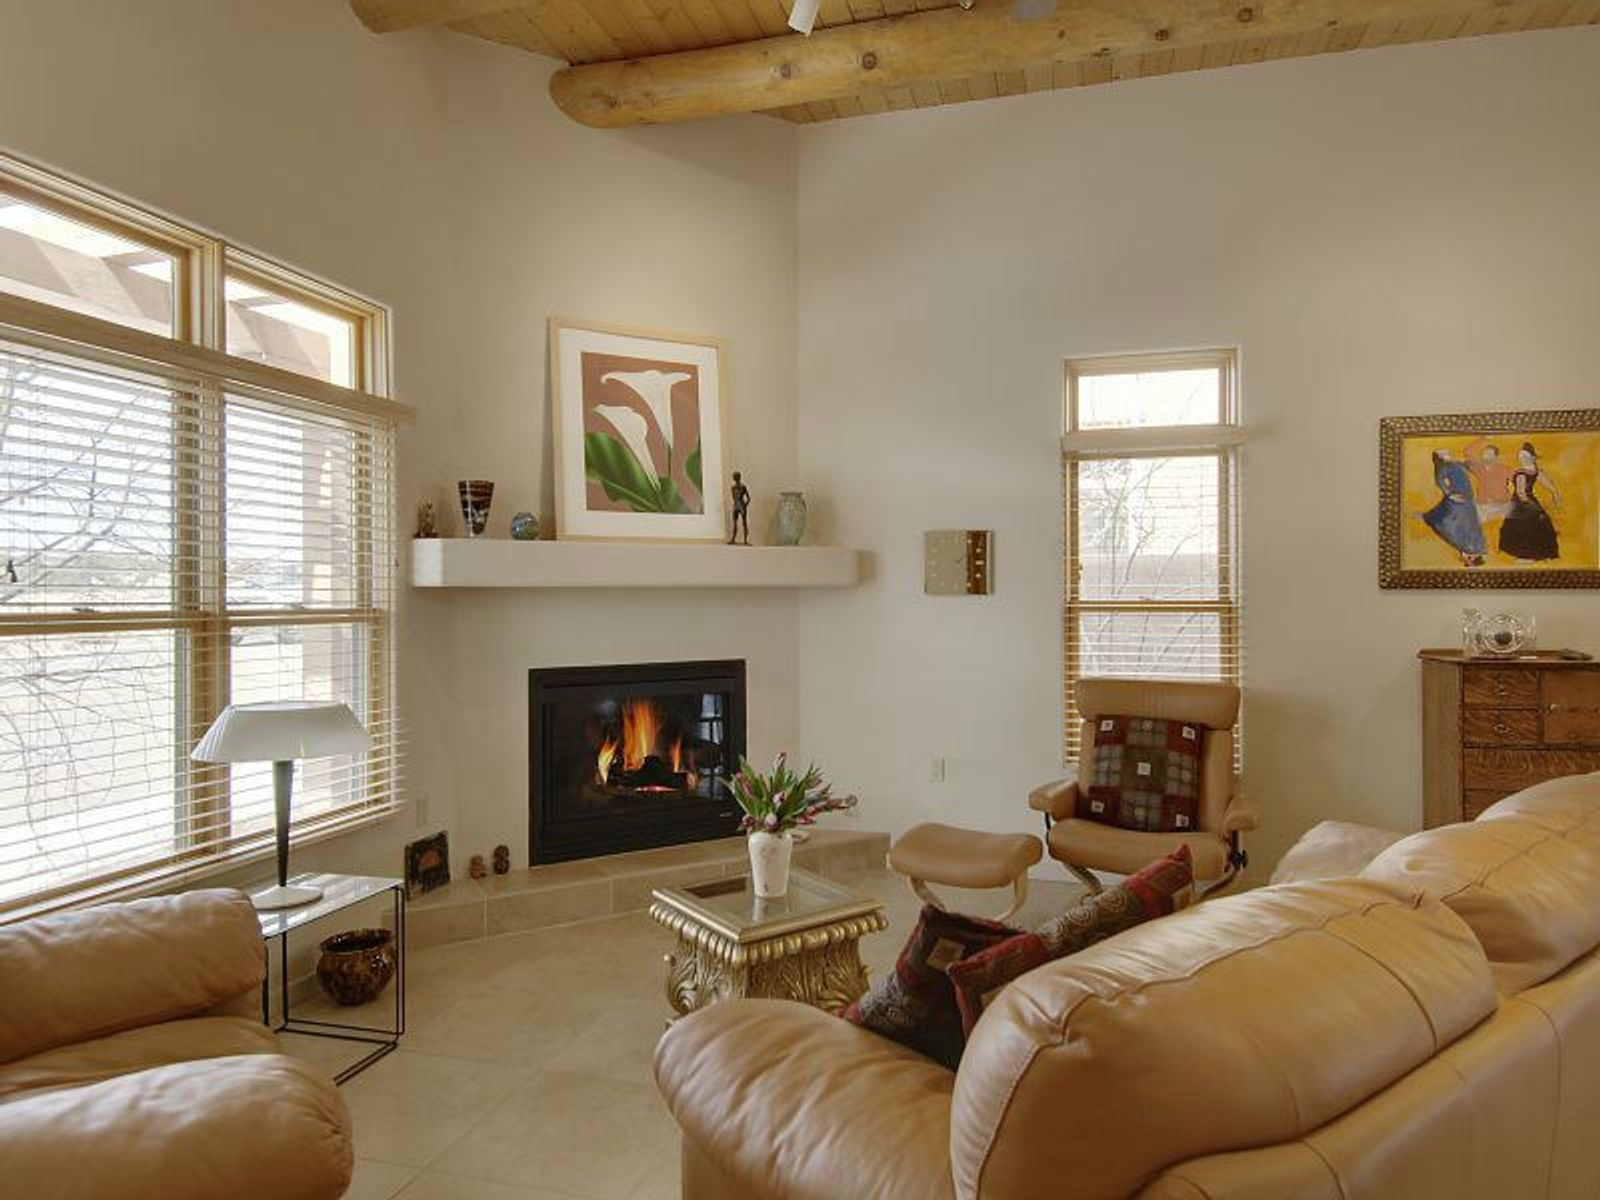 26 Vista Precioso, Santa Fe NM Townhouse - Santa Fe Real Estate